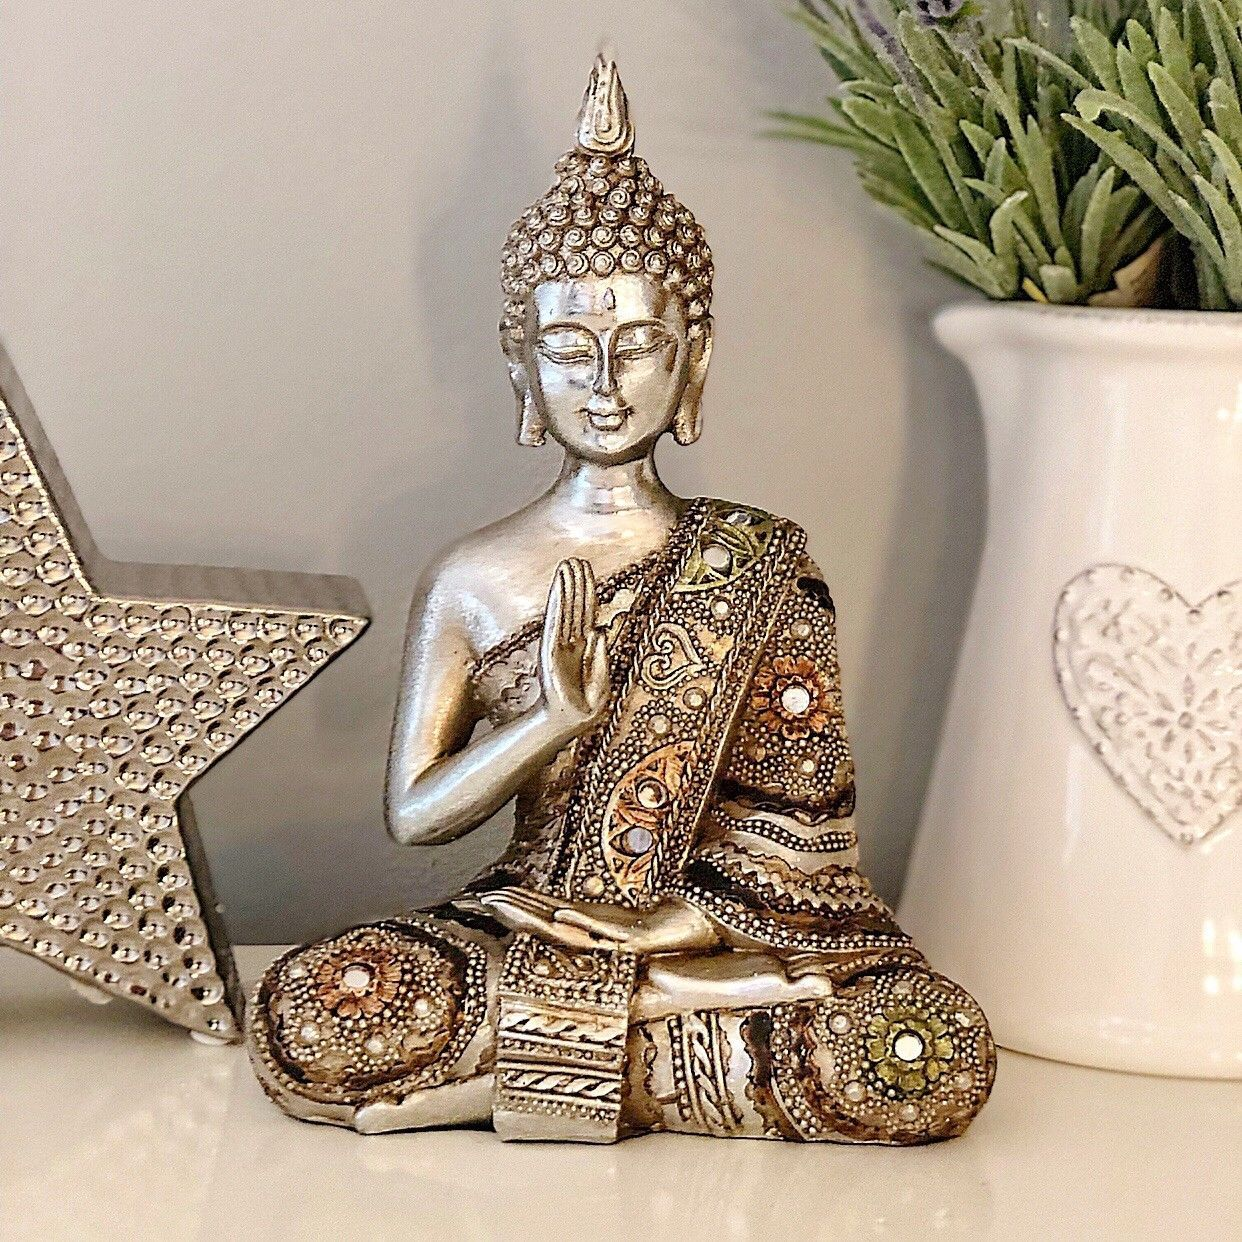 Small Sitting Antique Silver Thai Buddha Ornament Figurine Statue Sculpture Gift Buddha Statue Decor Buddha Decor Buddha Home Decor